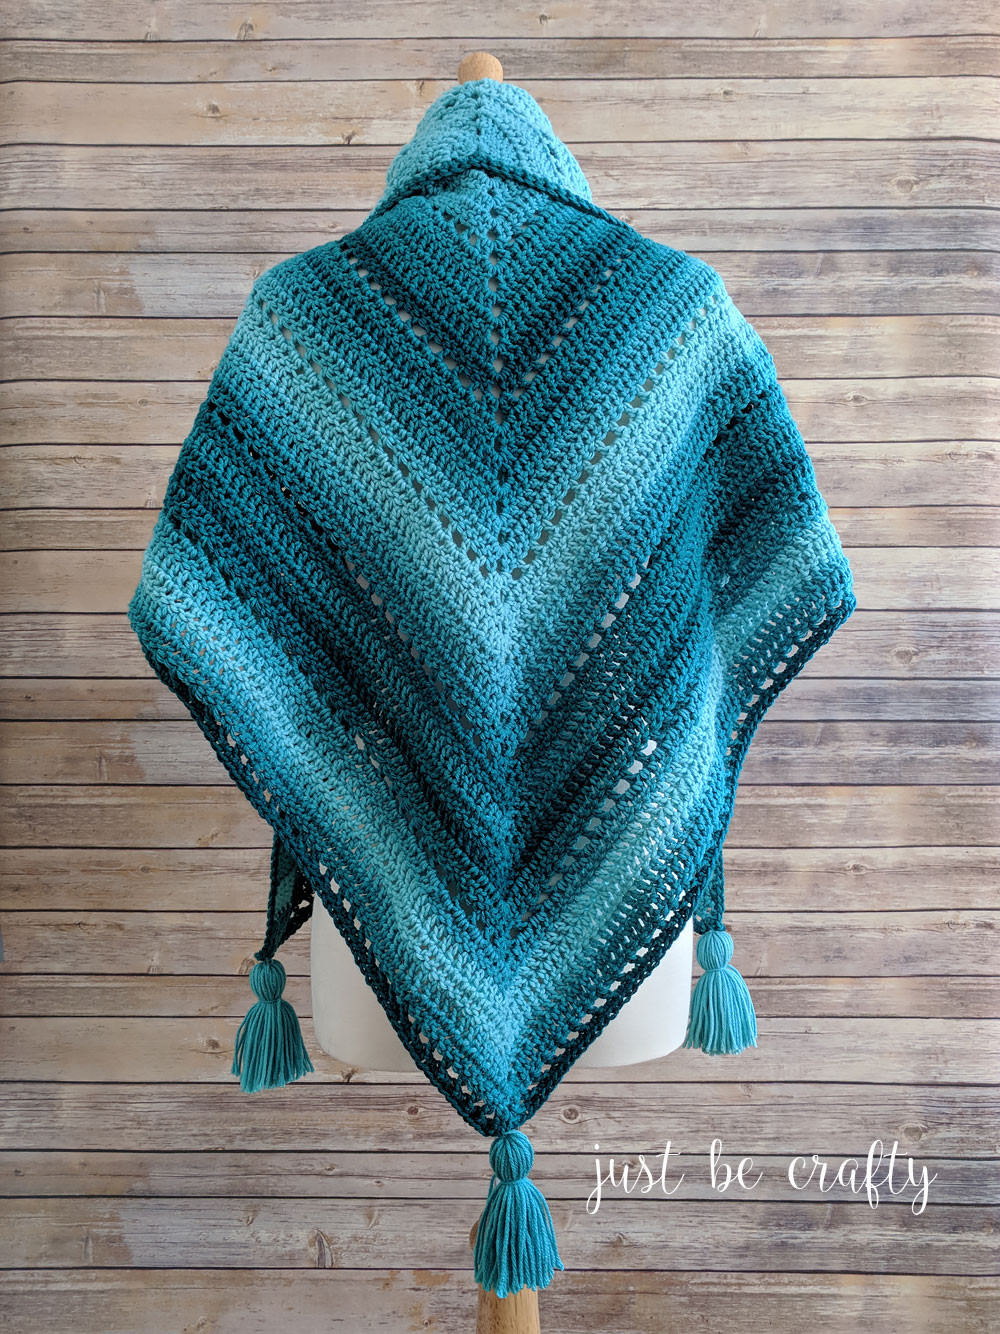 Beautiful Crochet Triangle Shawl Pattern Free Crochet Pattern by Triangle Scarf Crochet Pattern Of Marvelous 44 Photos Triangle Scarf Crochet Pattern